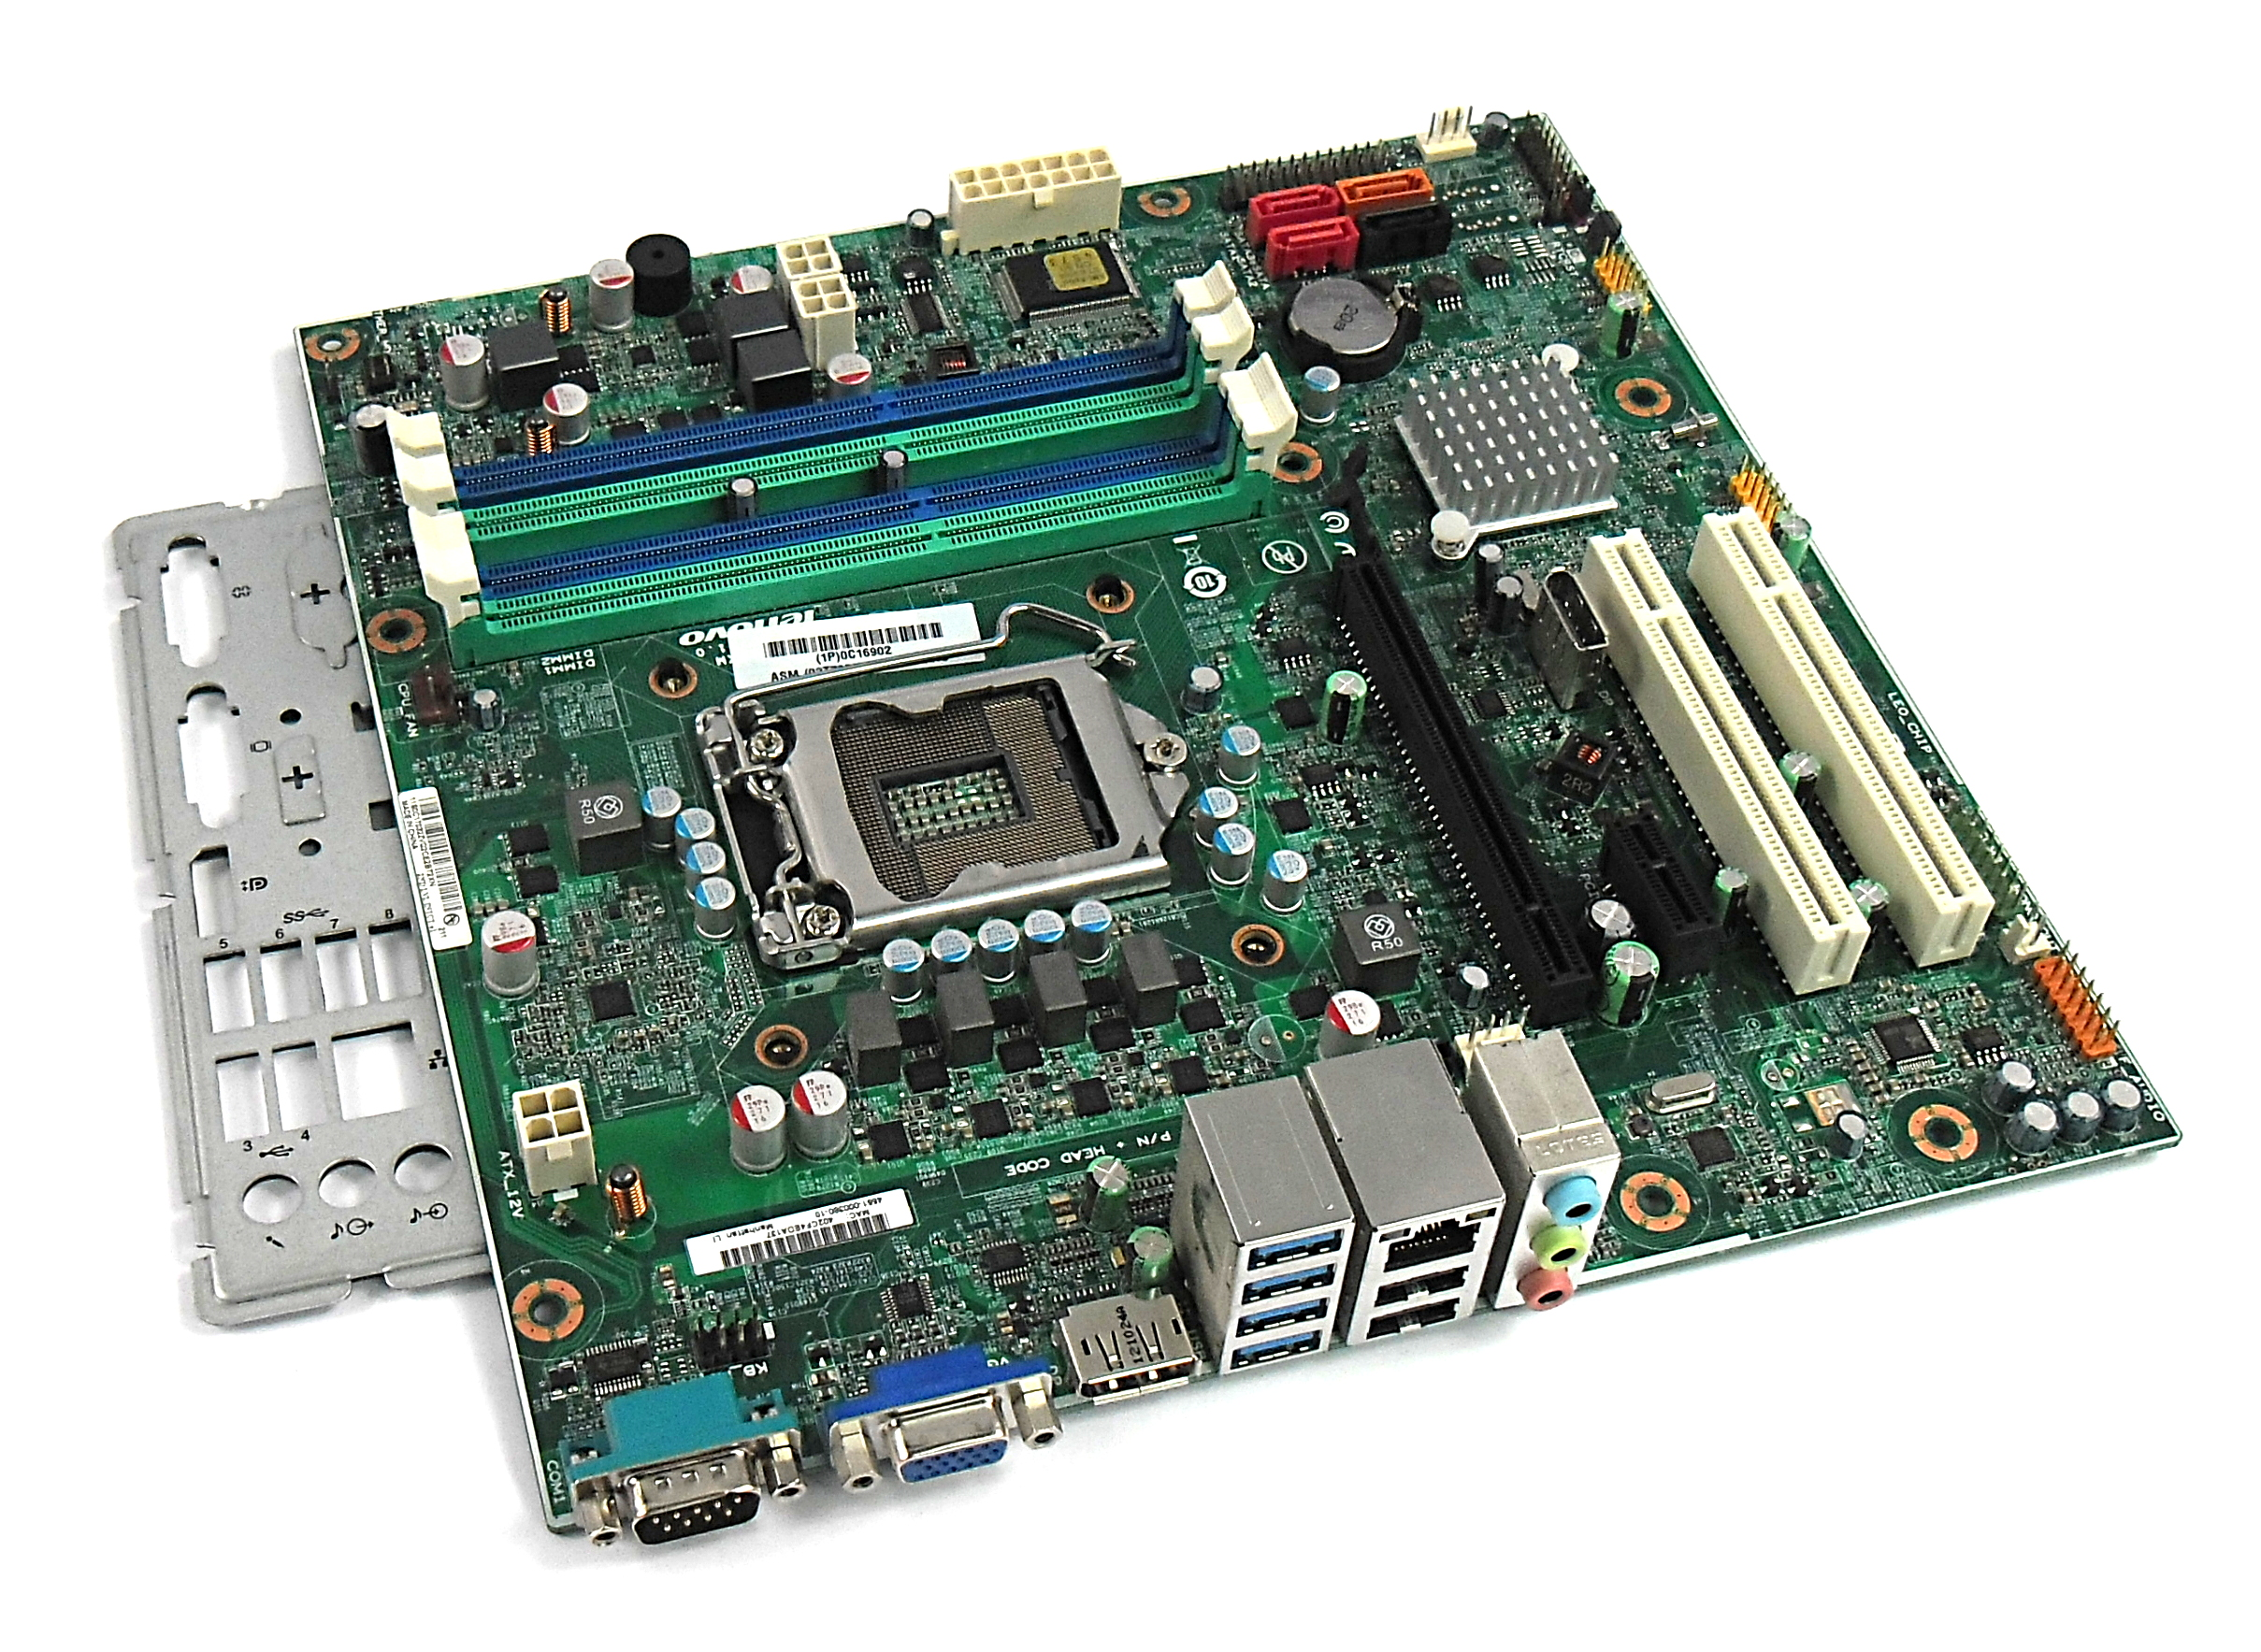 Details about Lenovo 03T7083 ThinkCentre M92p Intel LGA1155 USB 3 0  Motherboard IS7XM REV:1 0